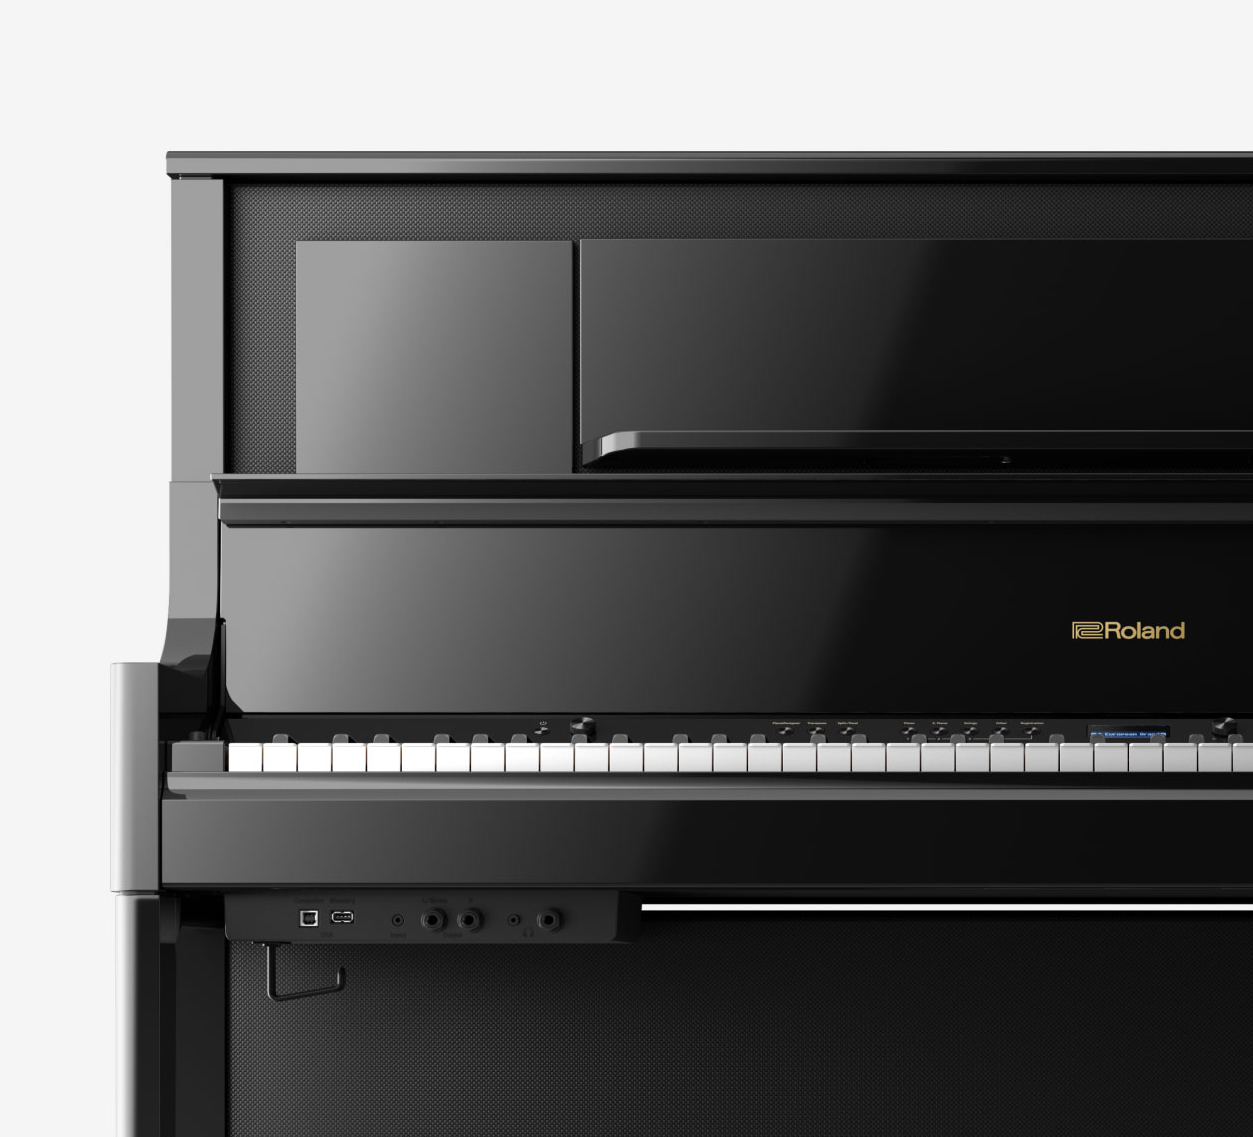 Main Gallery Image: Roland LX708 digital piano.